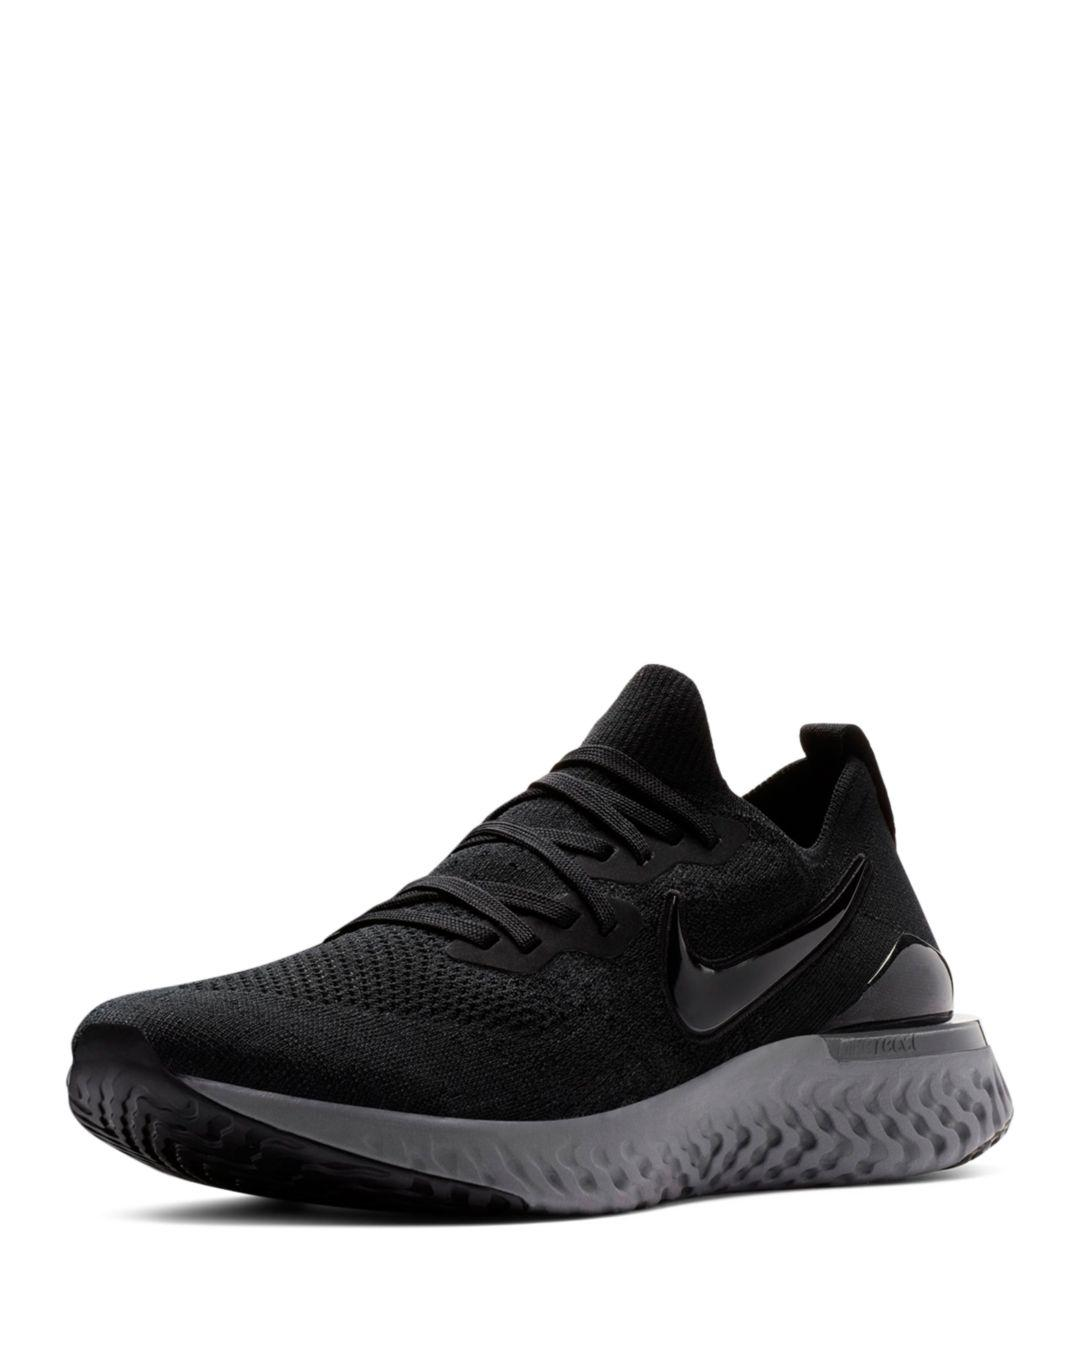 ce5bc169bafc Lyst - Nike Epic React Flyknit 2 Black  Black-white-gunsmoke in ...